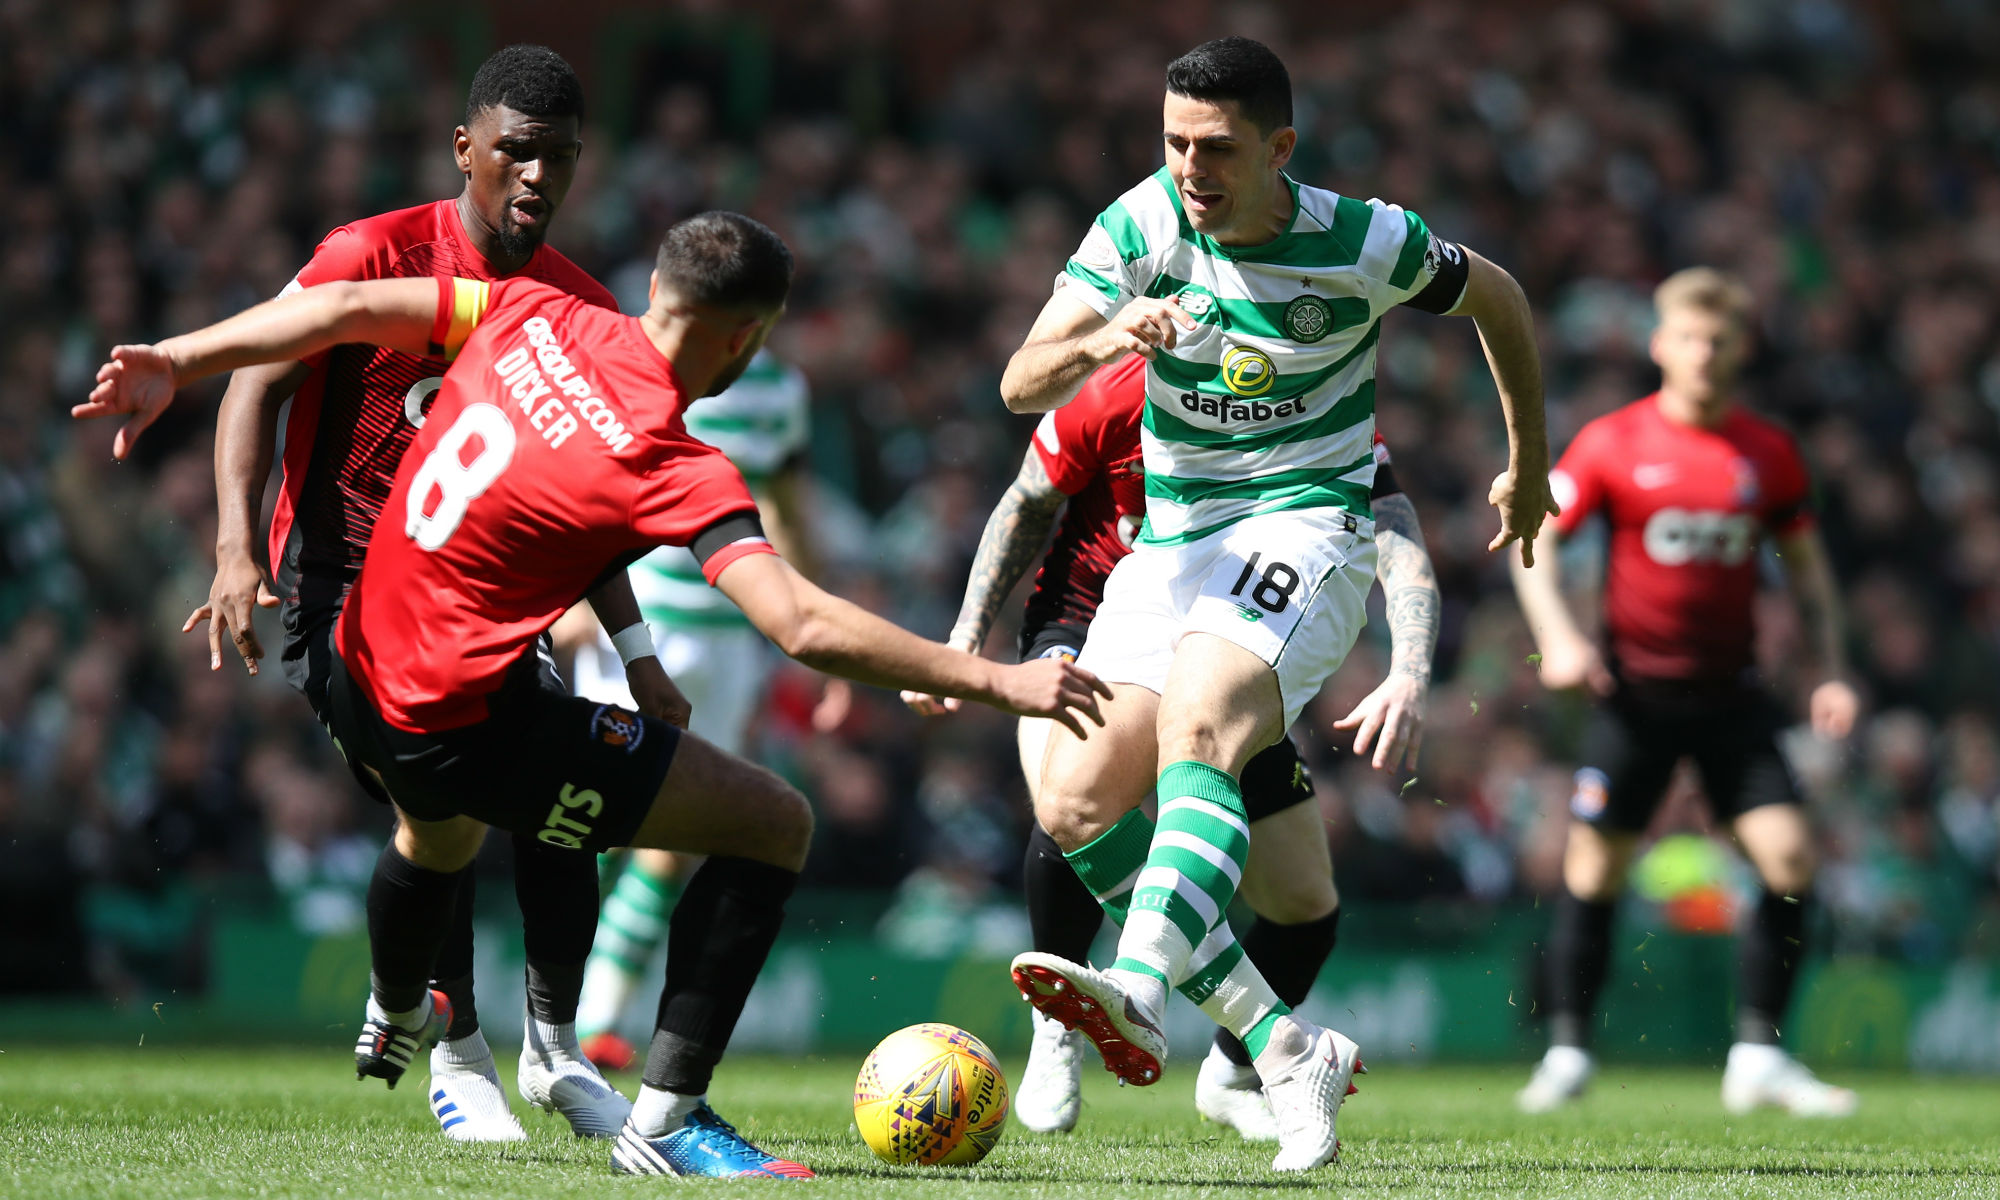 Aussies Abroad: Rogic and Boyle claim overnight wins in Scotland